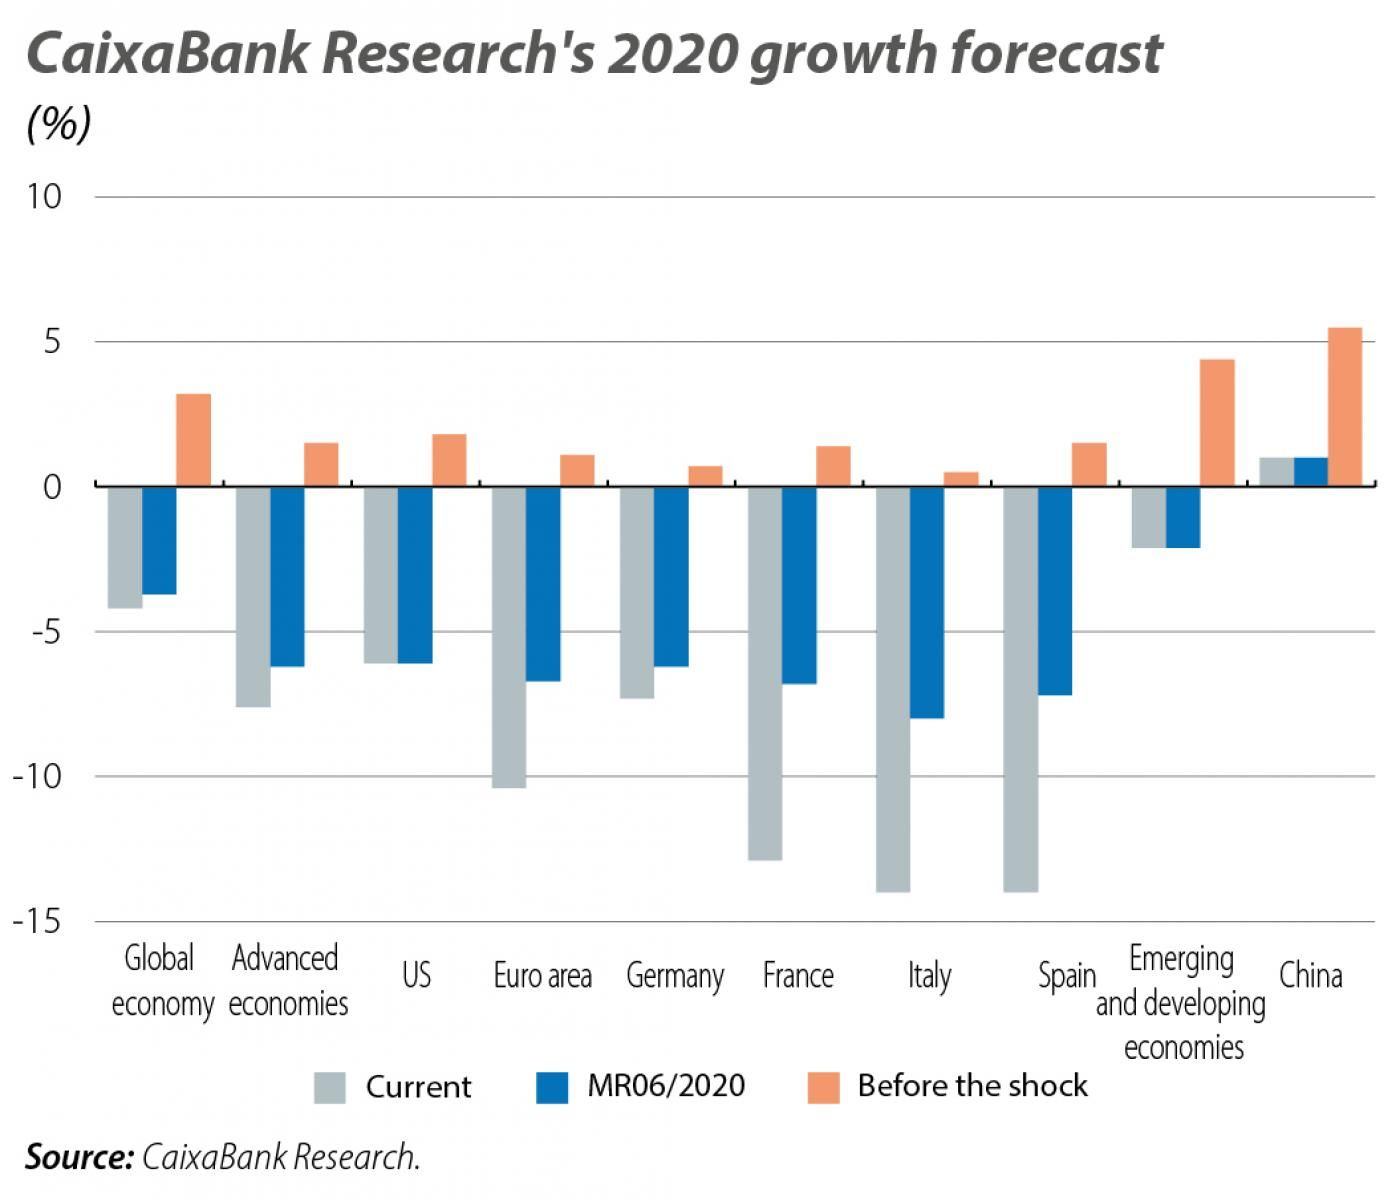 CaixaBank Research's 2020 growth forecast